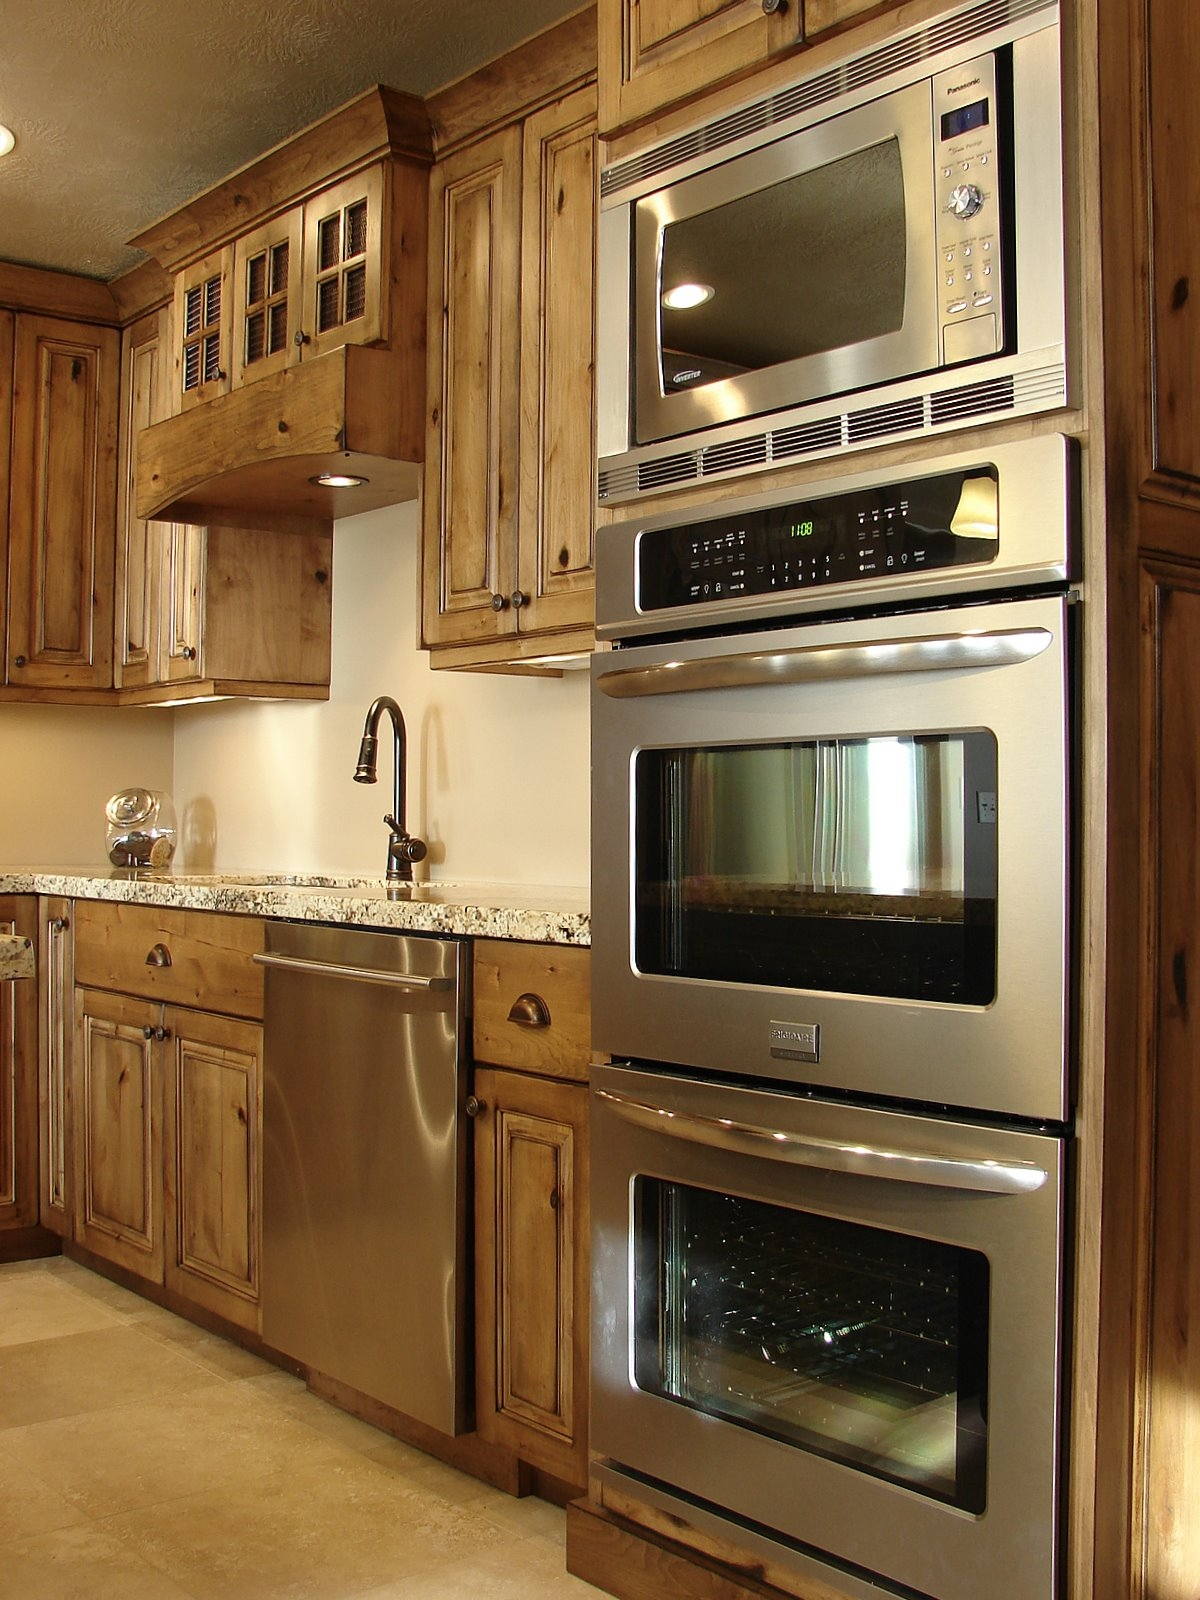 Kitchen Cabinets Oven Microwave